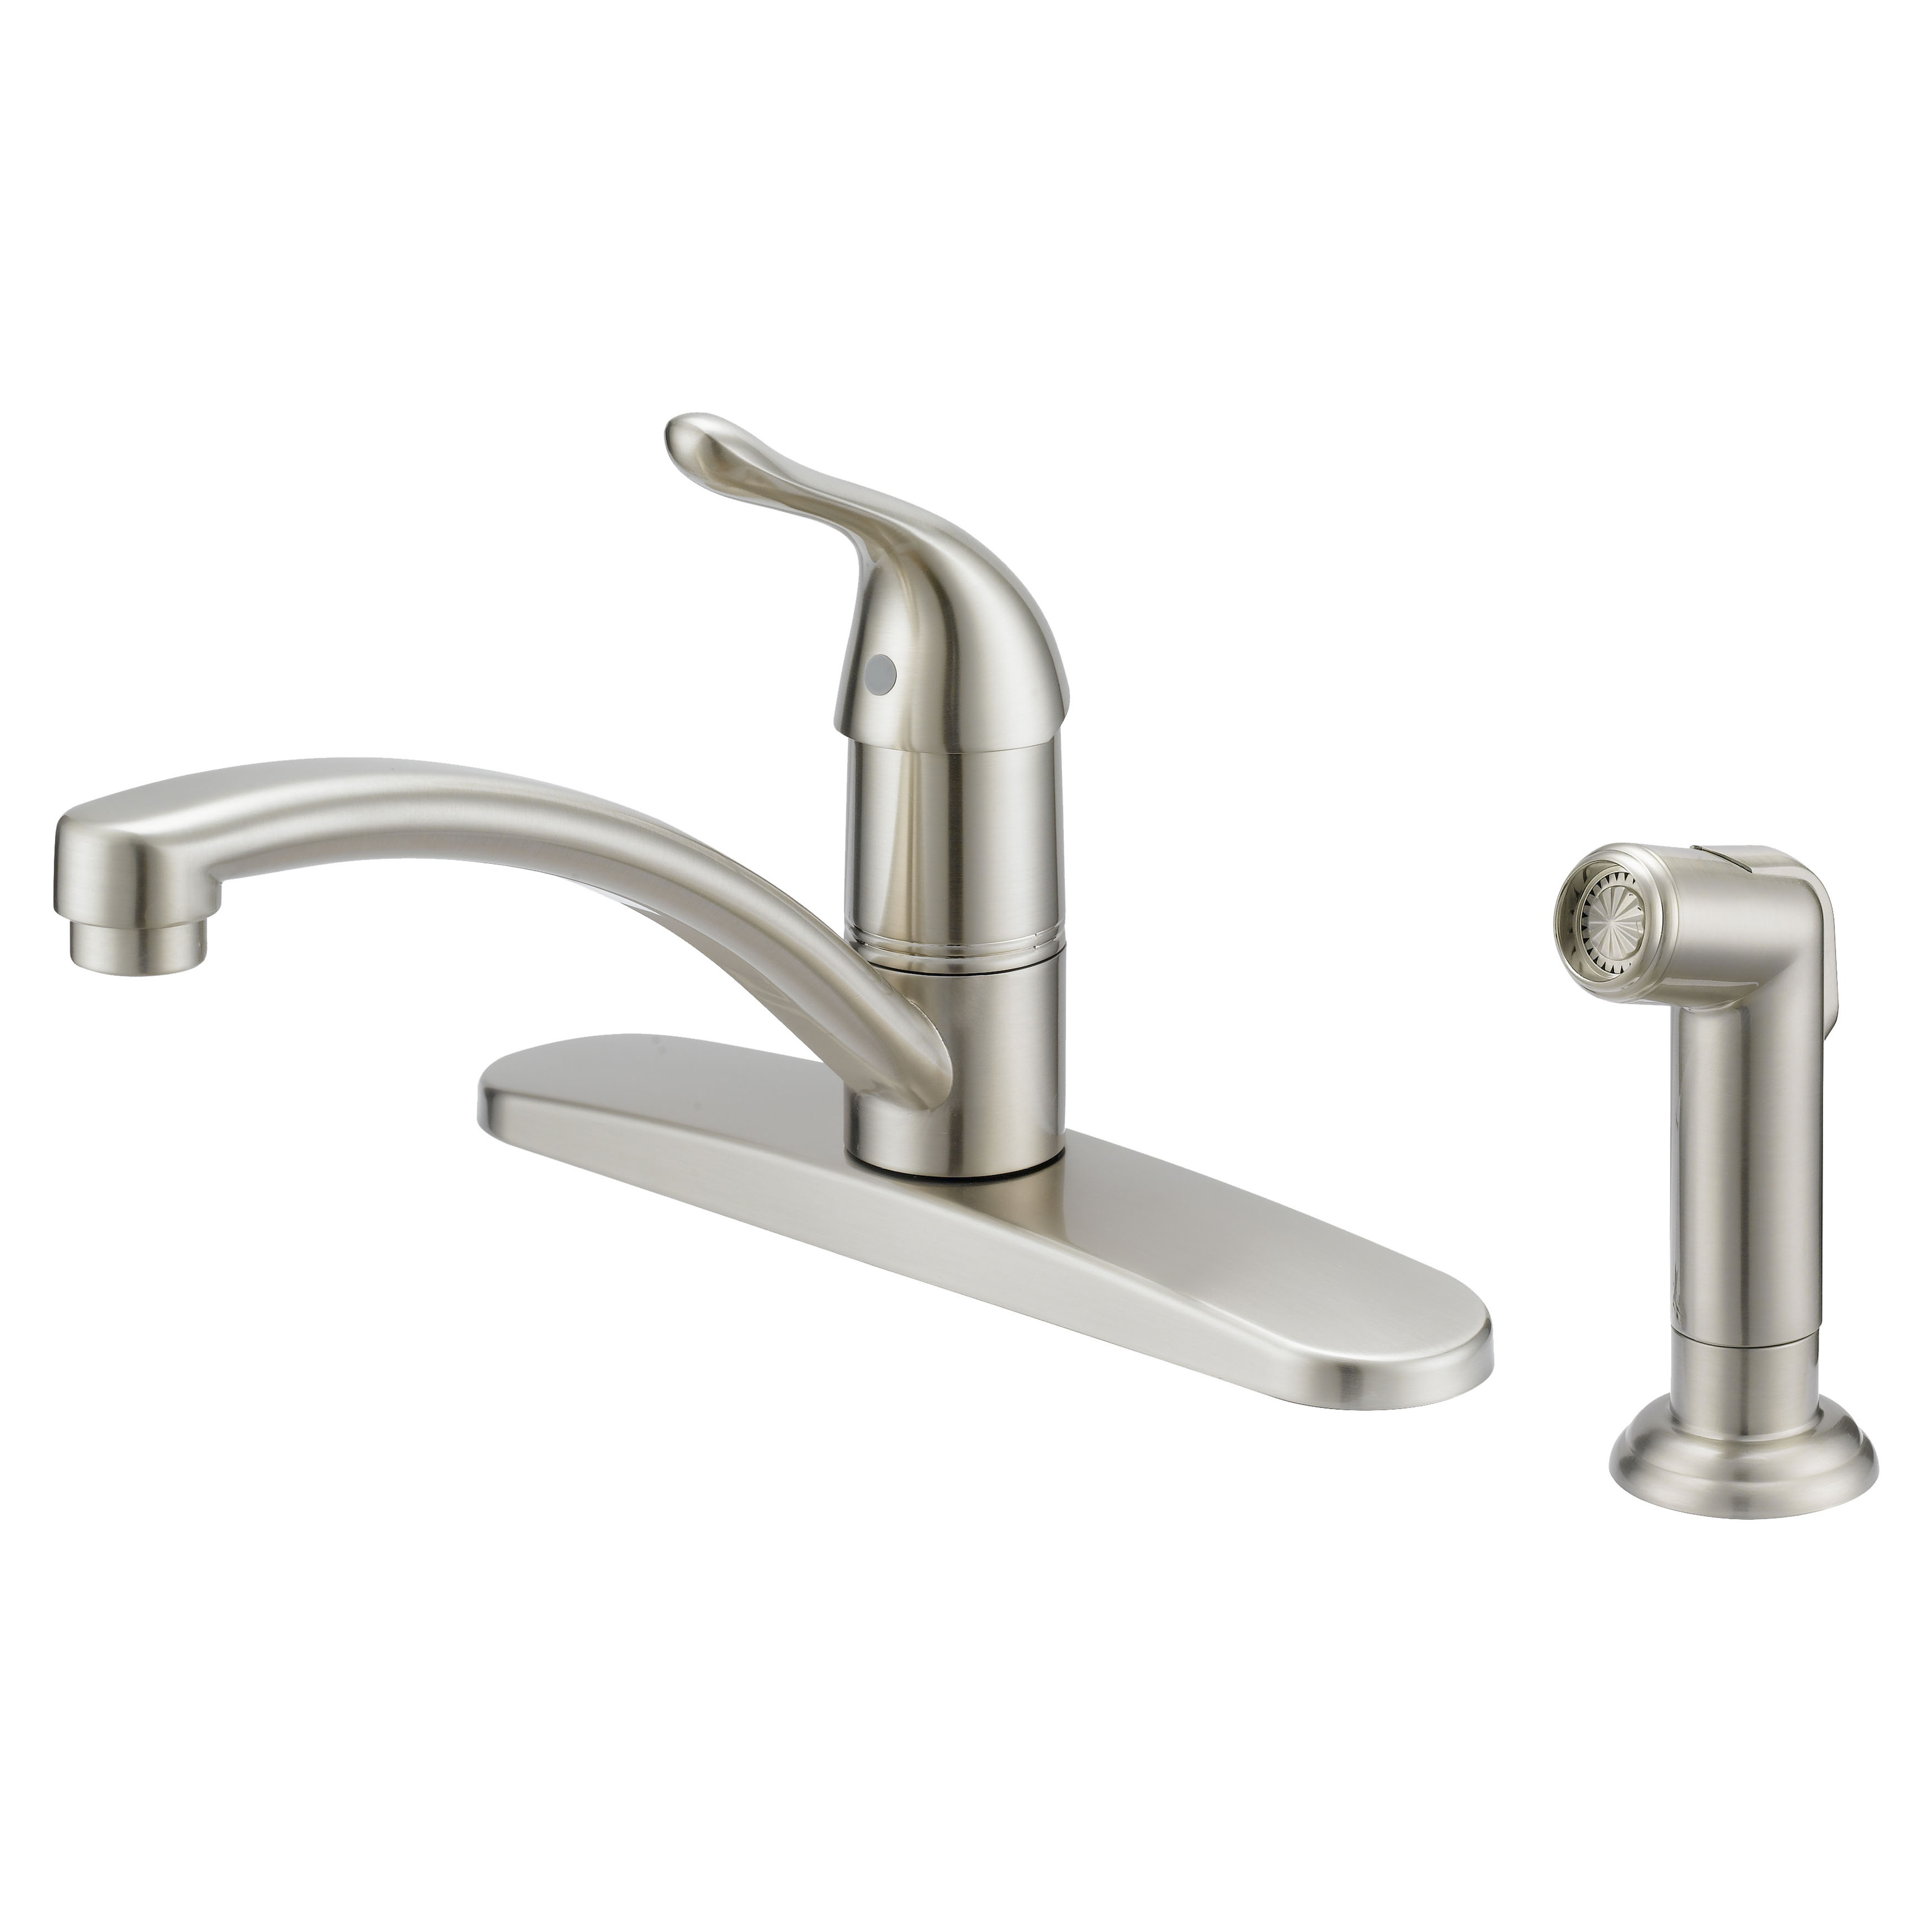 Picture of Boston Harbor 67534-1004 Kitchen Faucet, 1.8 gpm, 1-Faucet Handle, Metal, Brushed Nickel, Lever Handle